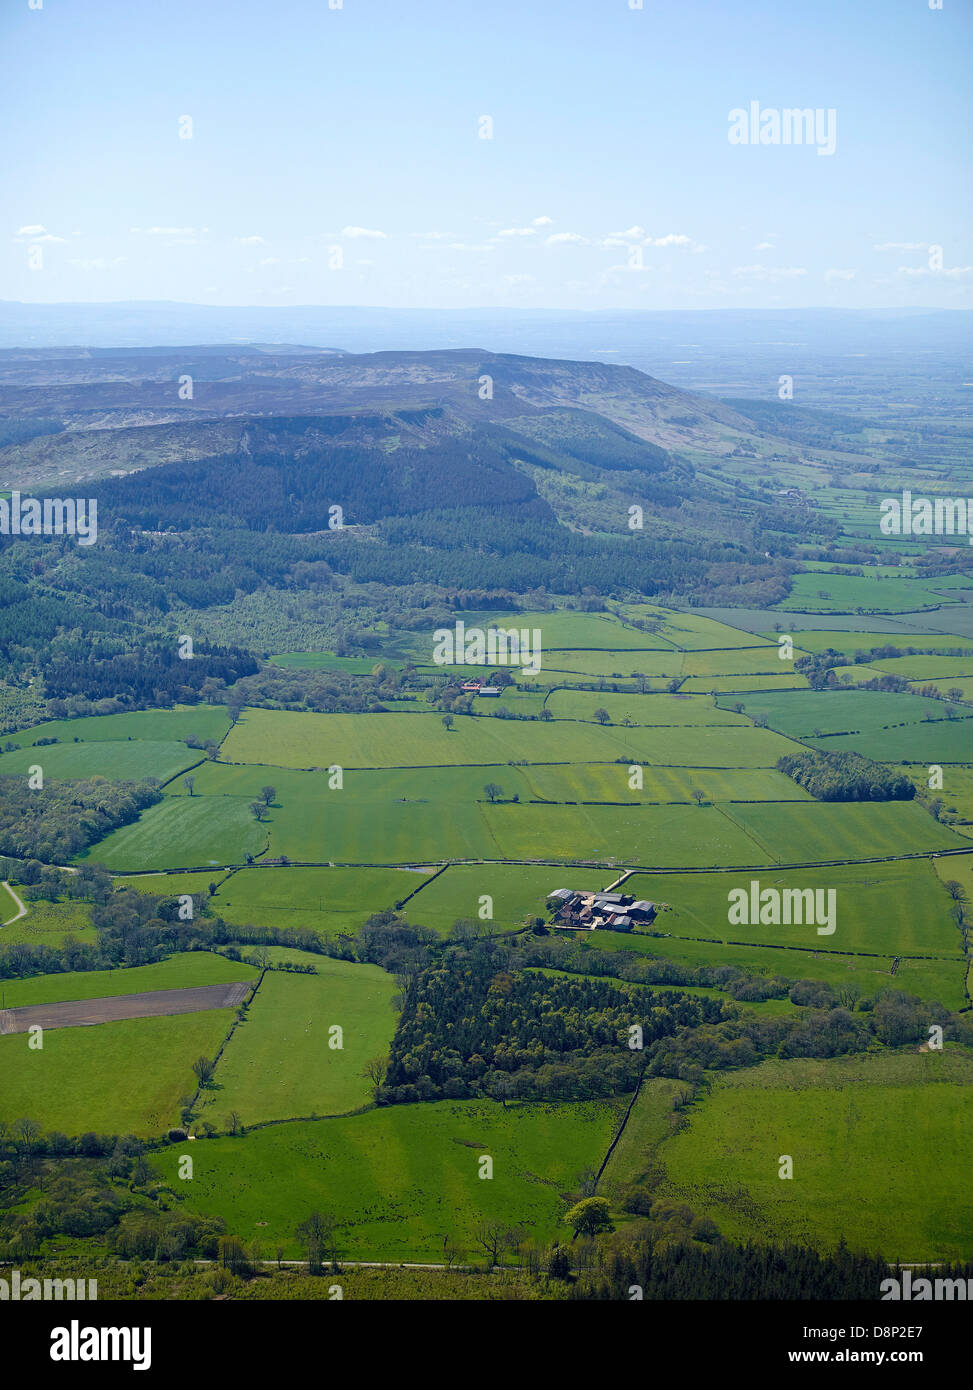 Looking East to West along the northern edge of the North Yorks Moors with Cleveland below - Stock Image